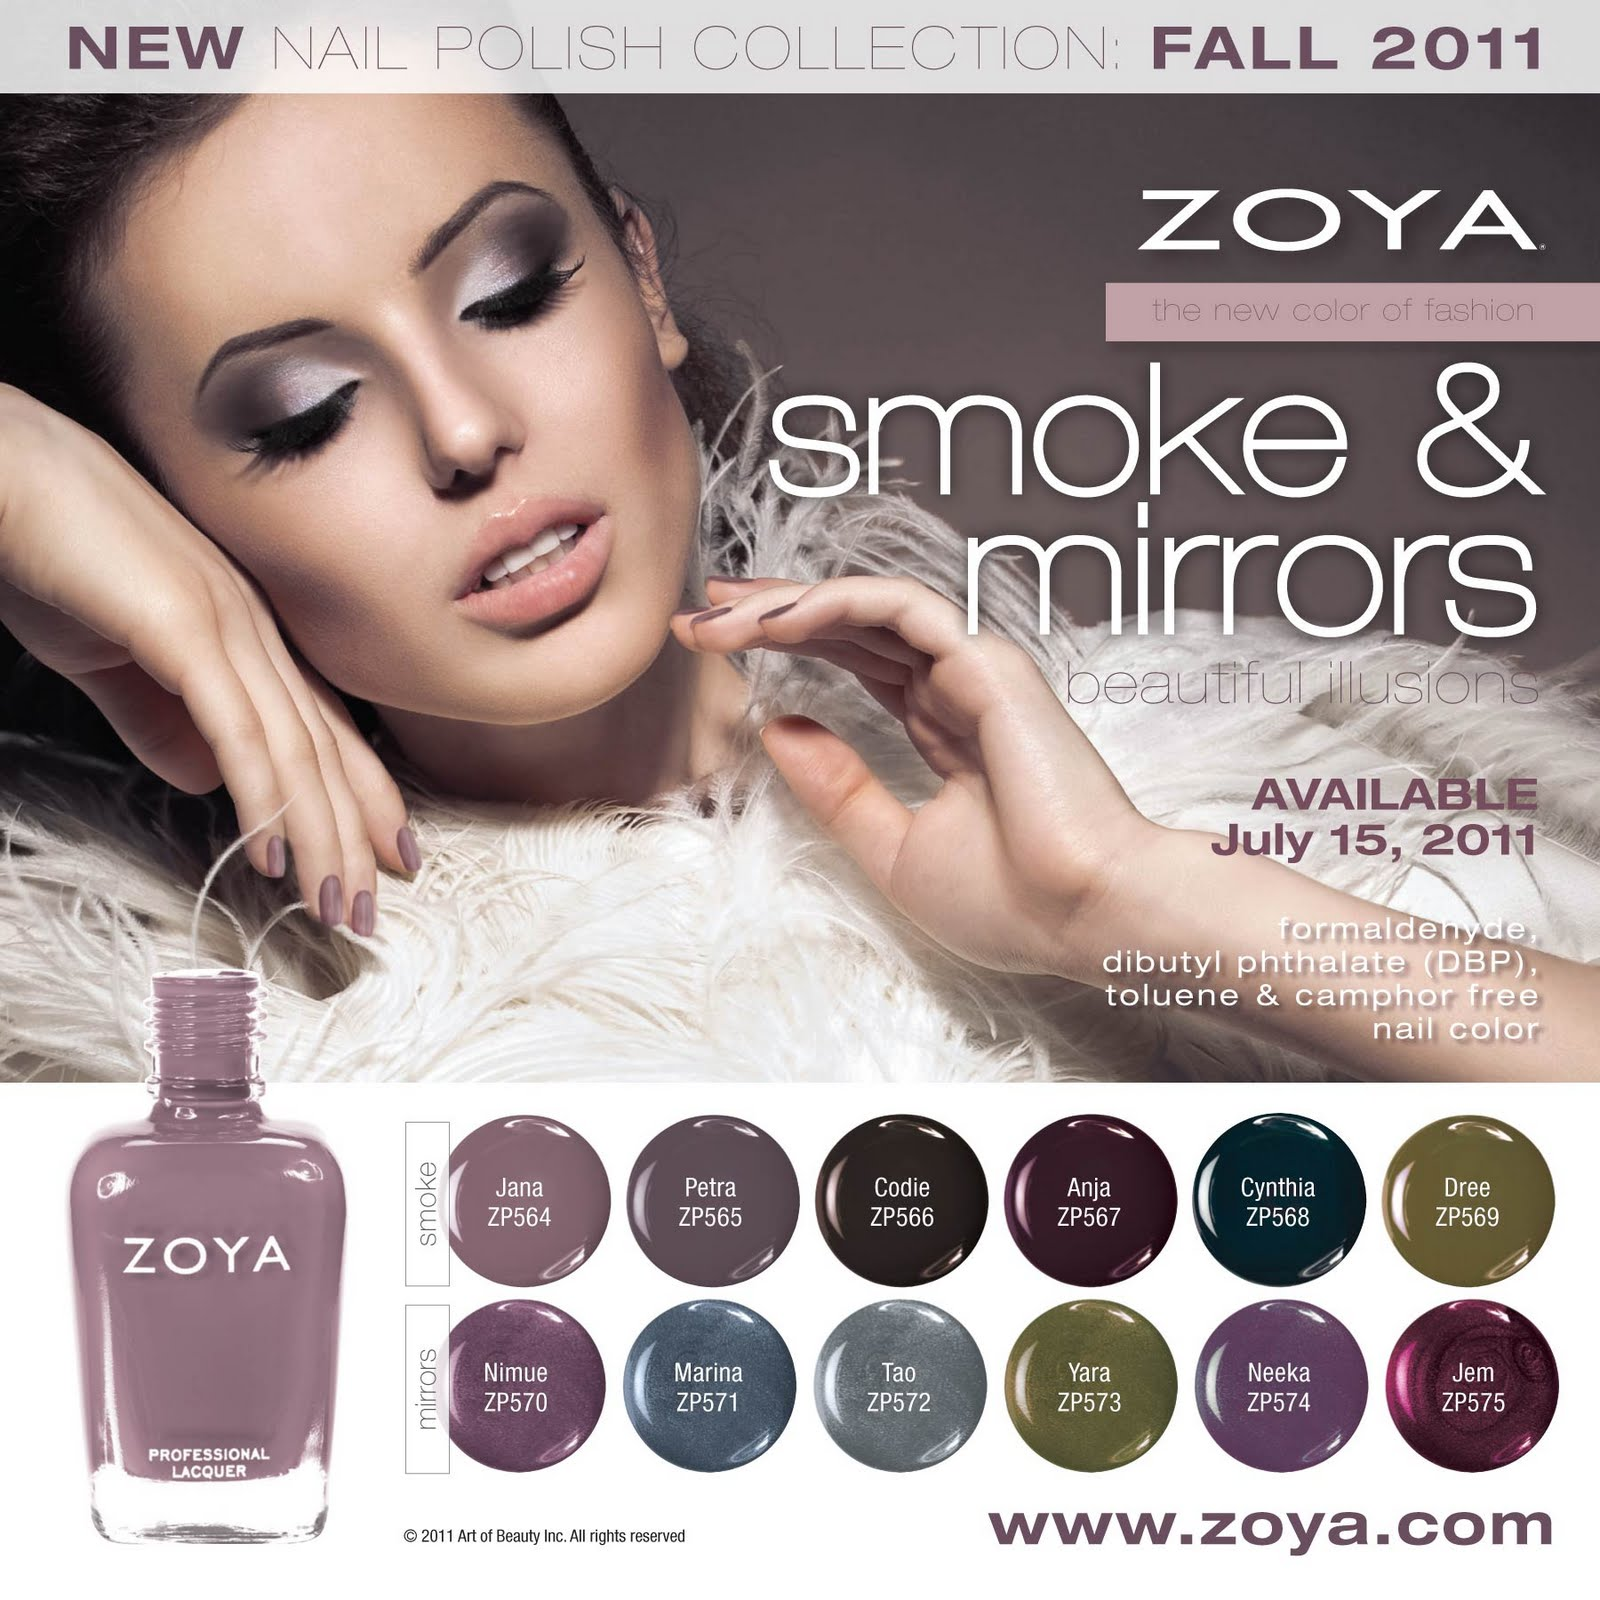 CANDY COATED TIPS: Fall 201: Smoke and Mirrors ...beautiful illusions